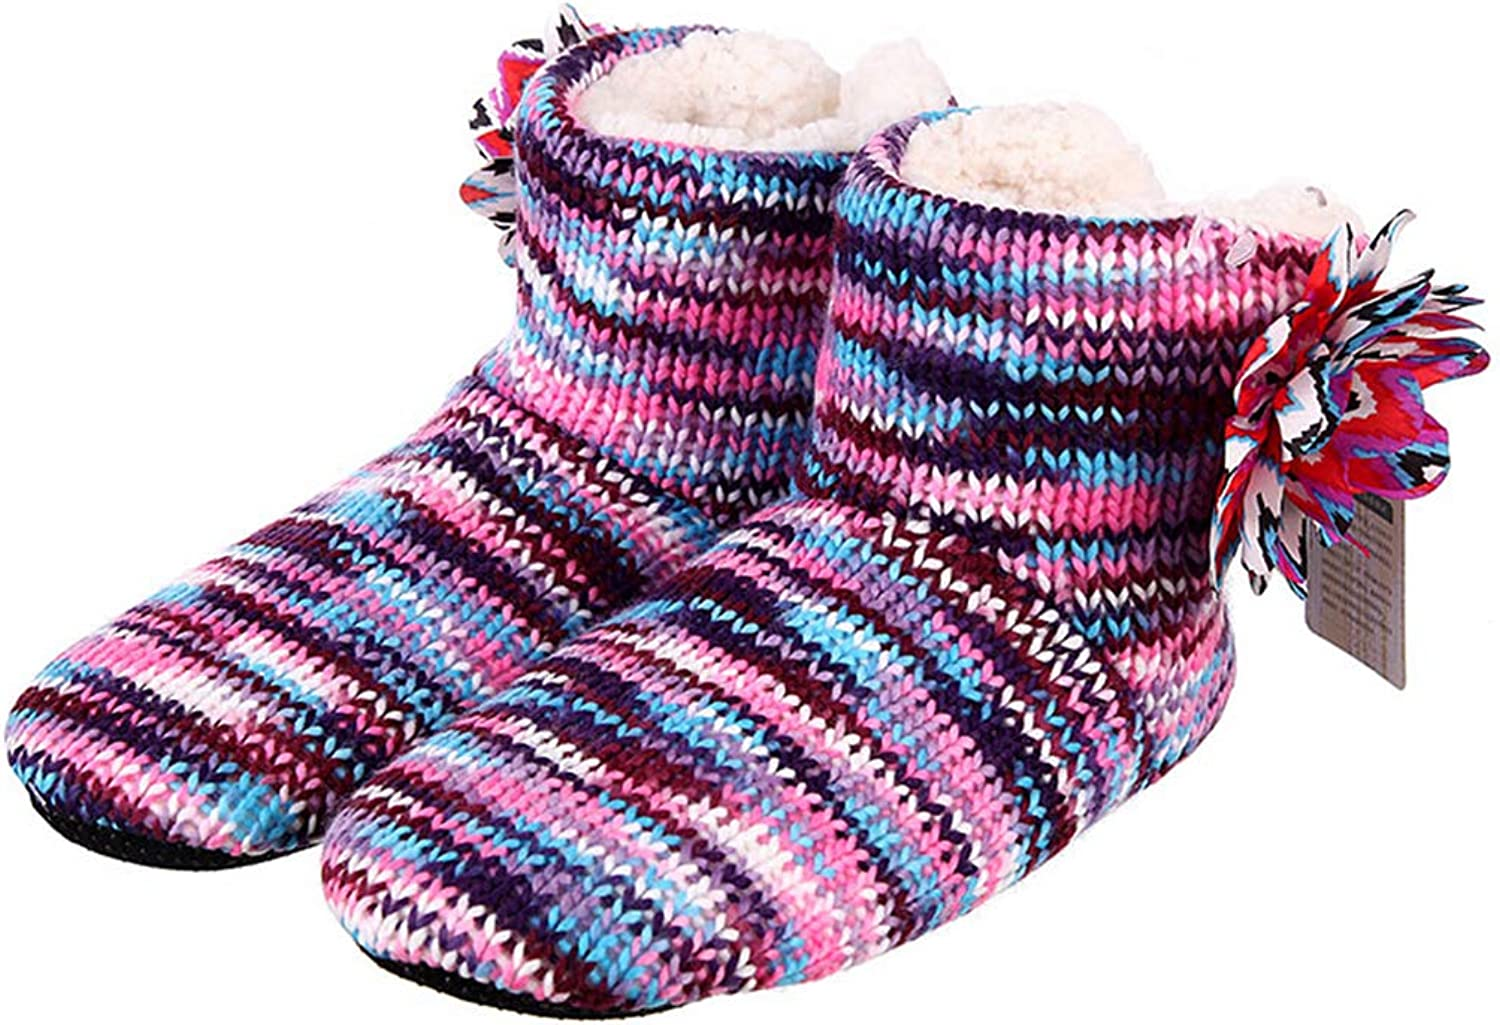 Winter Warm Slippers Adult Men and Women Household Socks Boots Soft Non-Slip Thicken Plush Home Indoor shoes